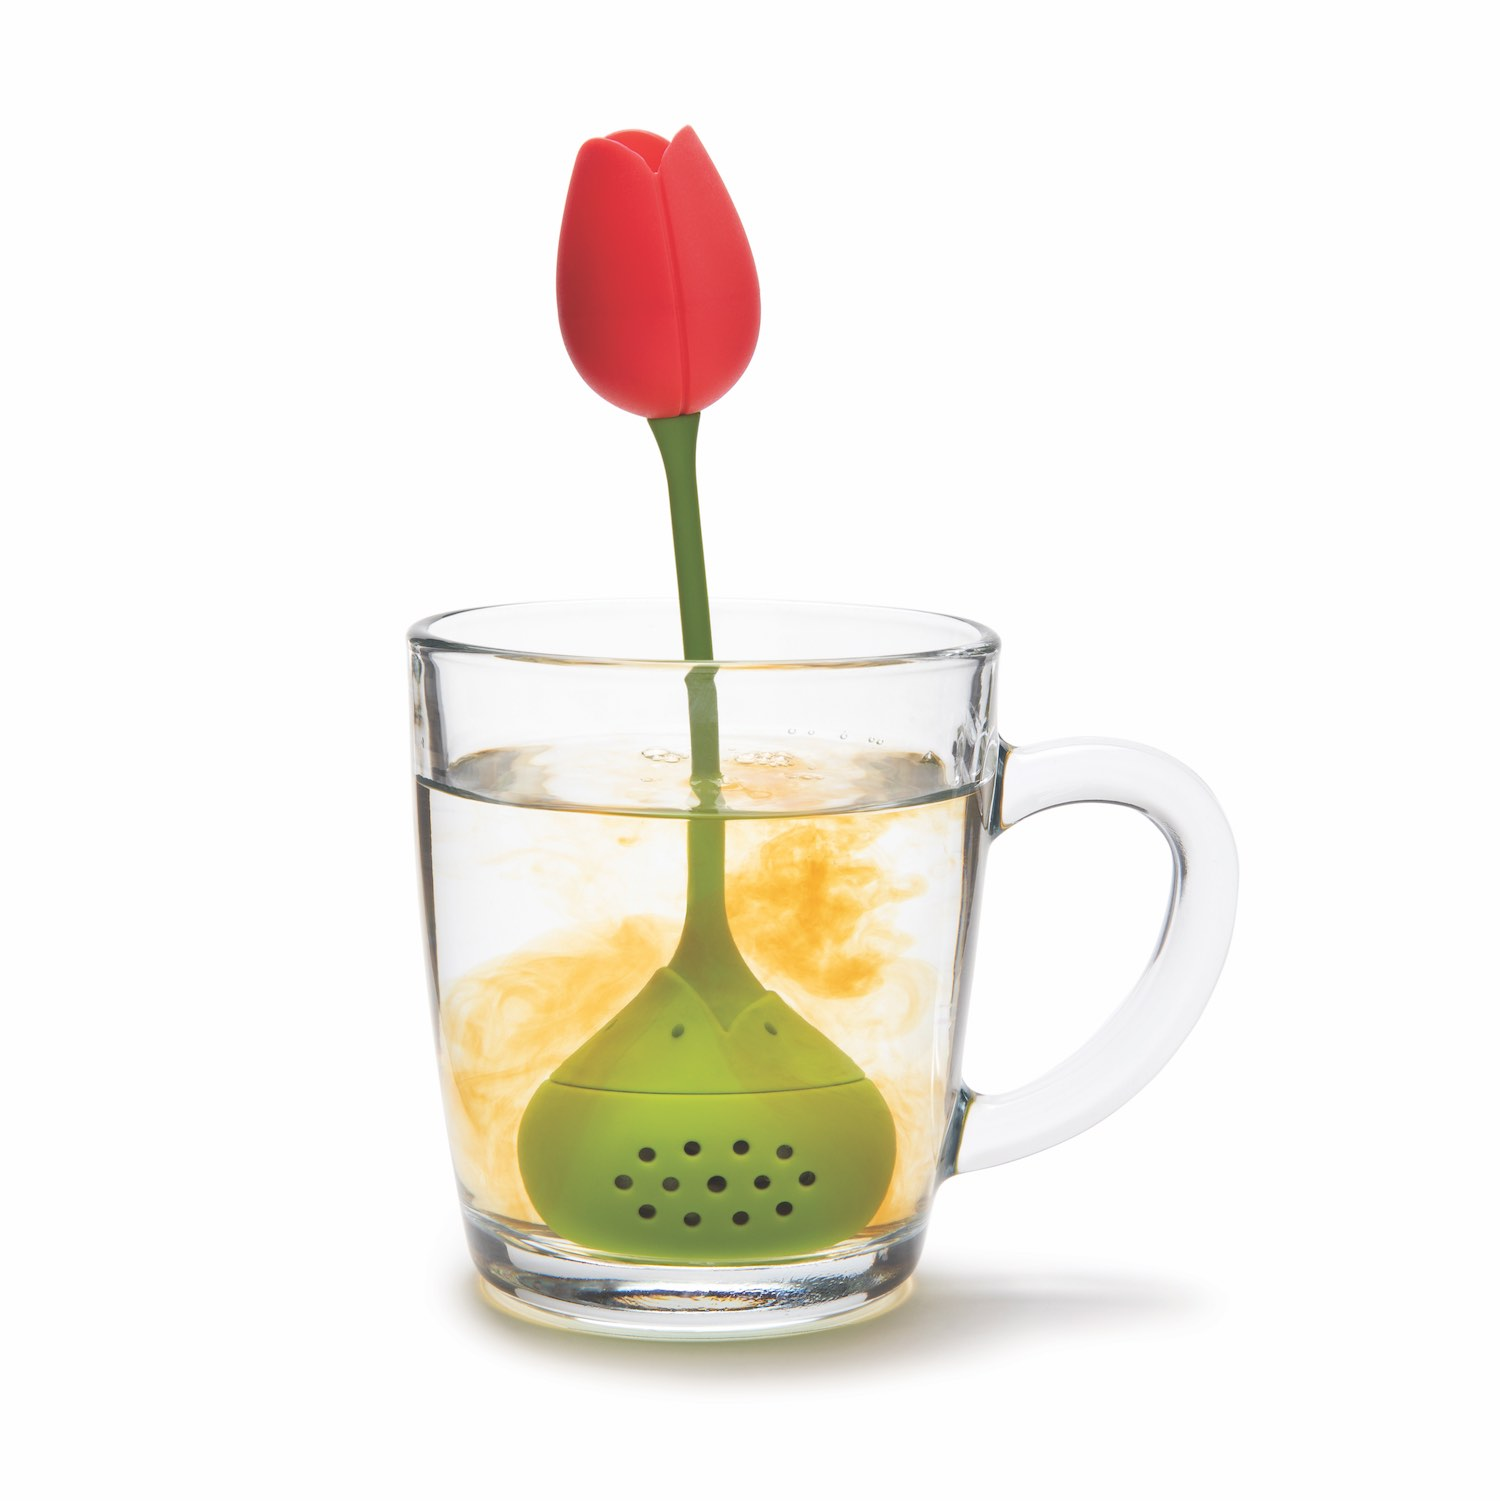 Animi Causa Tulip Tea Infuser